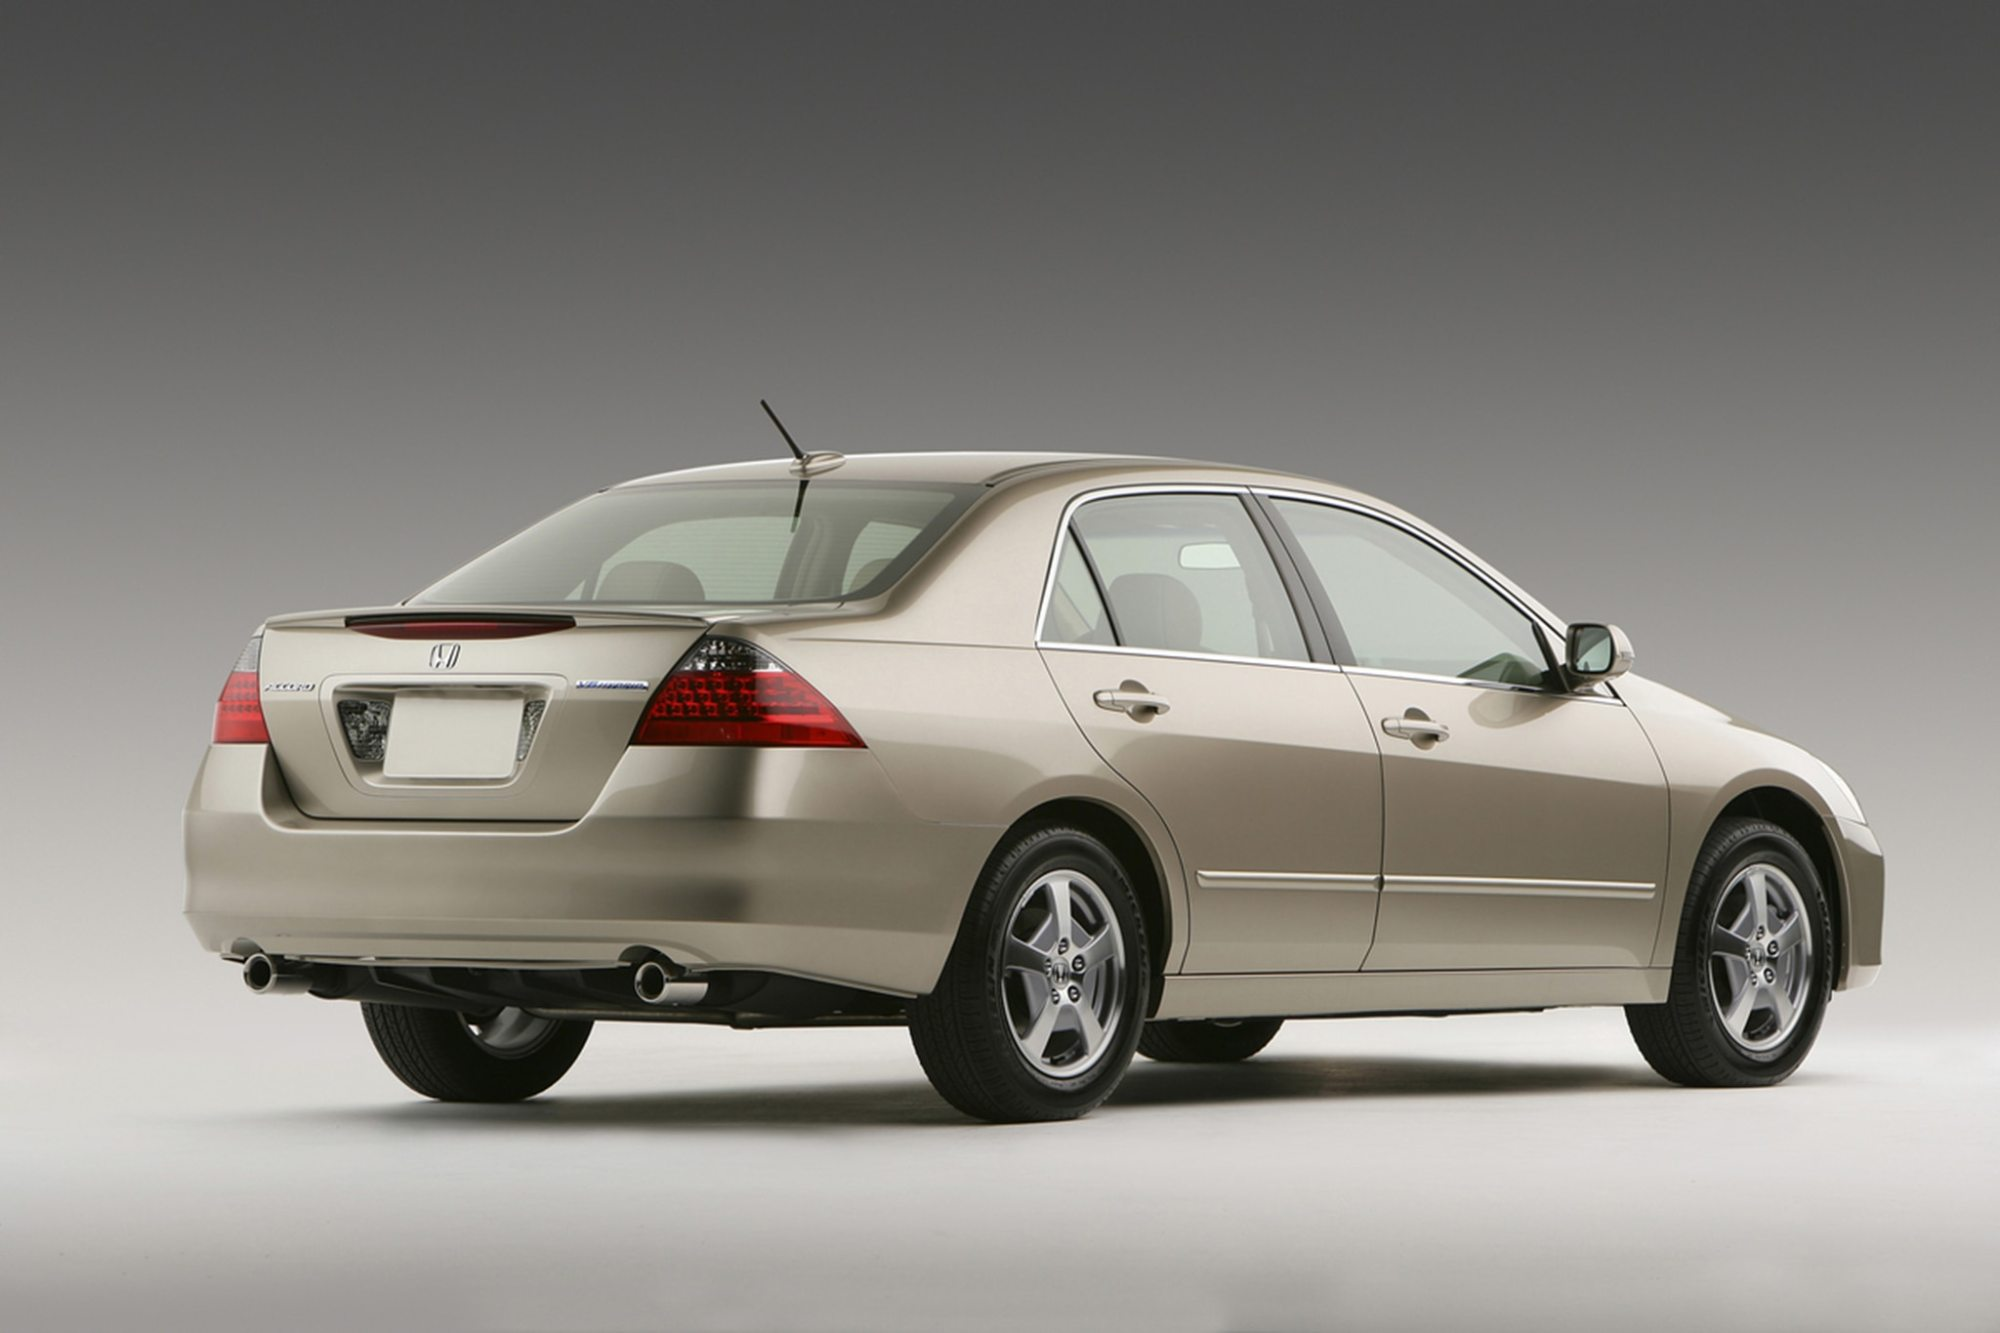 hight resolution of 2006 honda accord hybrid 7th generation 15 agosto 2016 wpengine